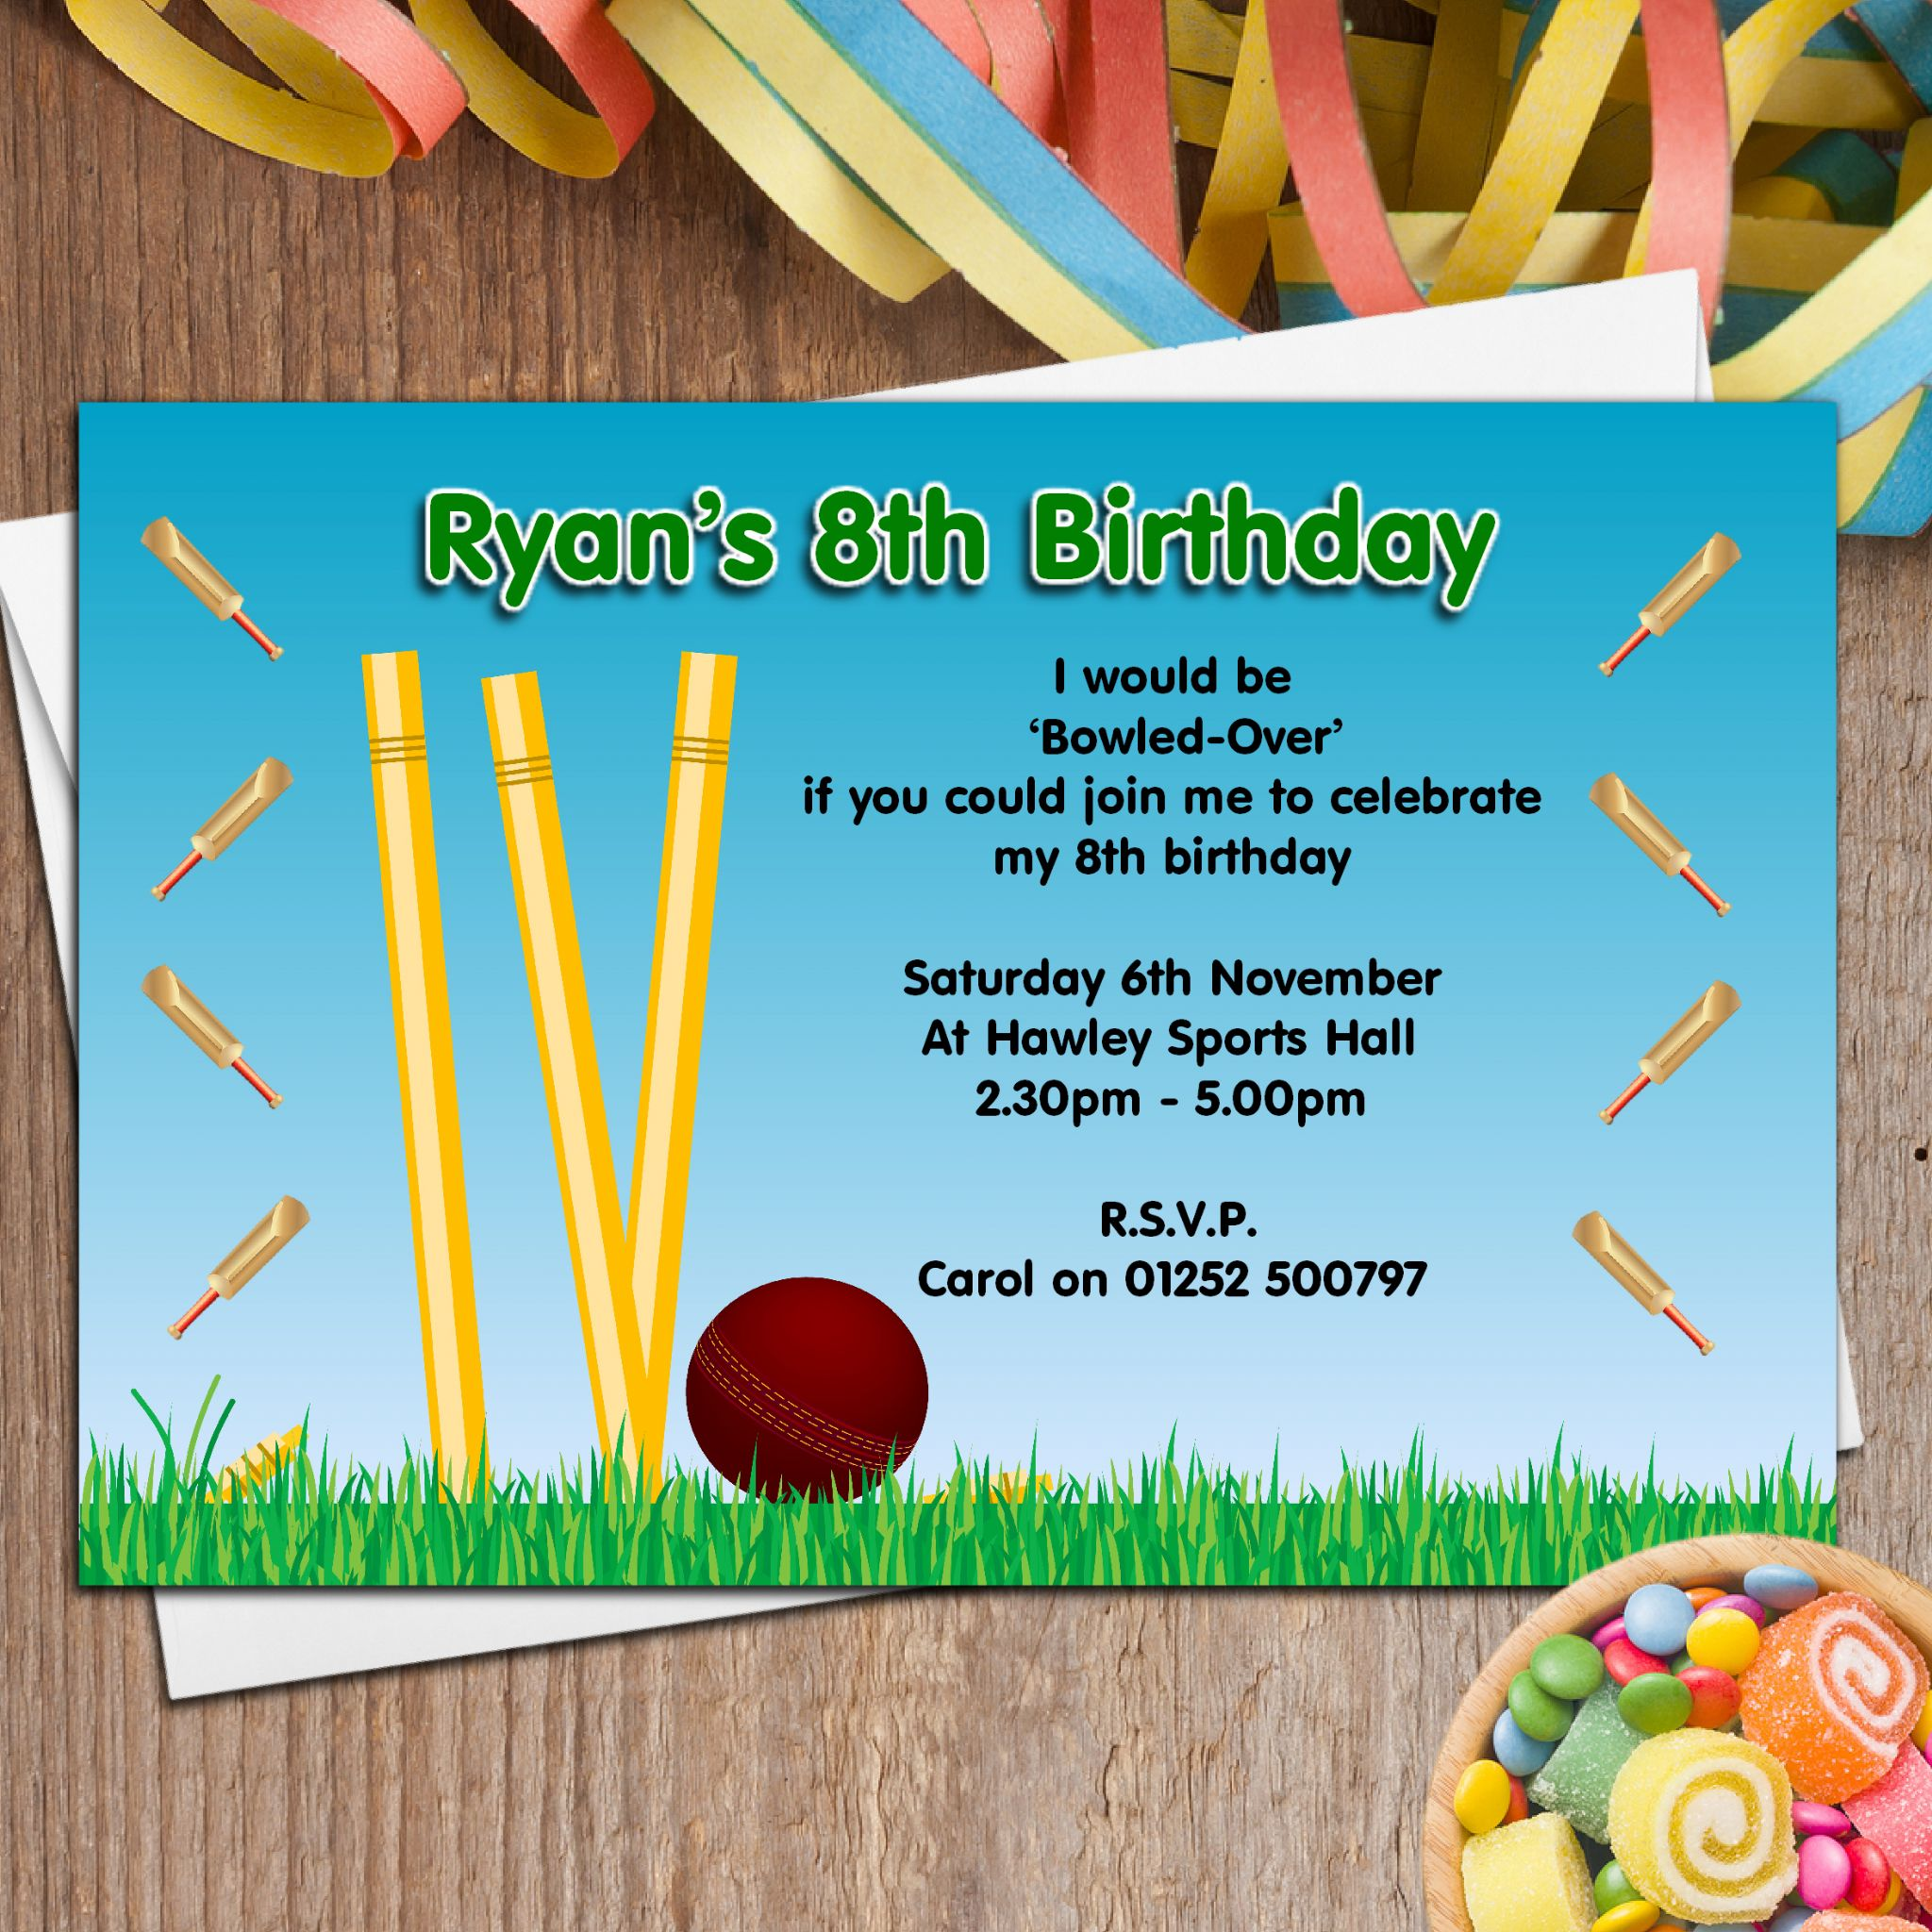 printed birthday party invitations ; 10-personalised-cricket-birthday-party-invitations-n46-1667-p